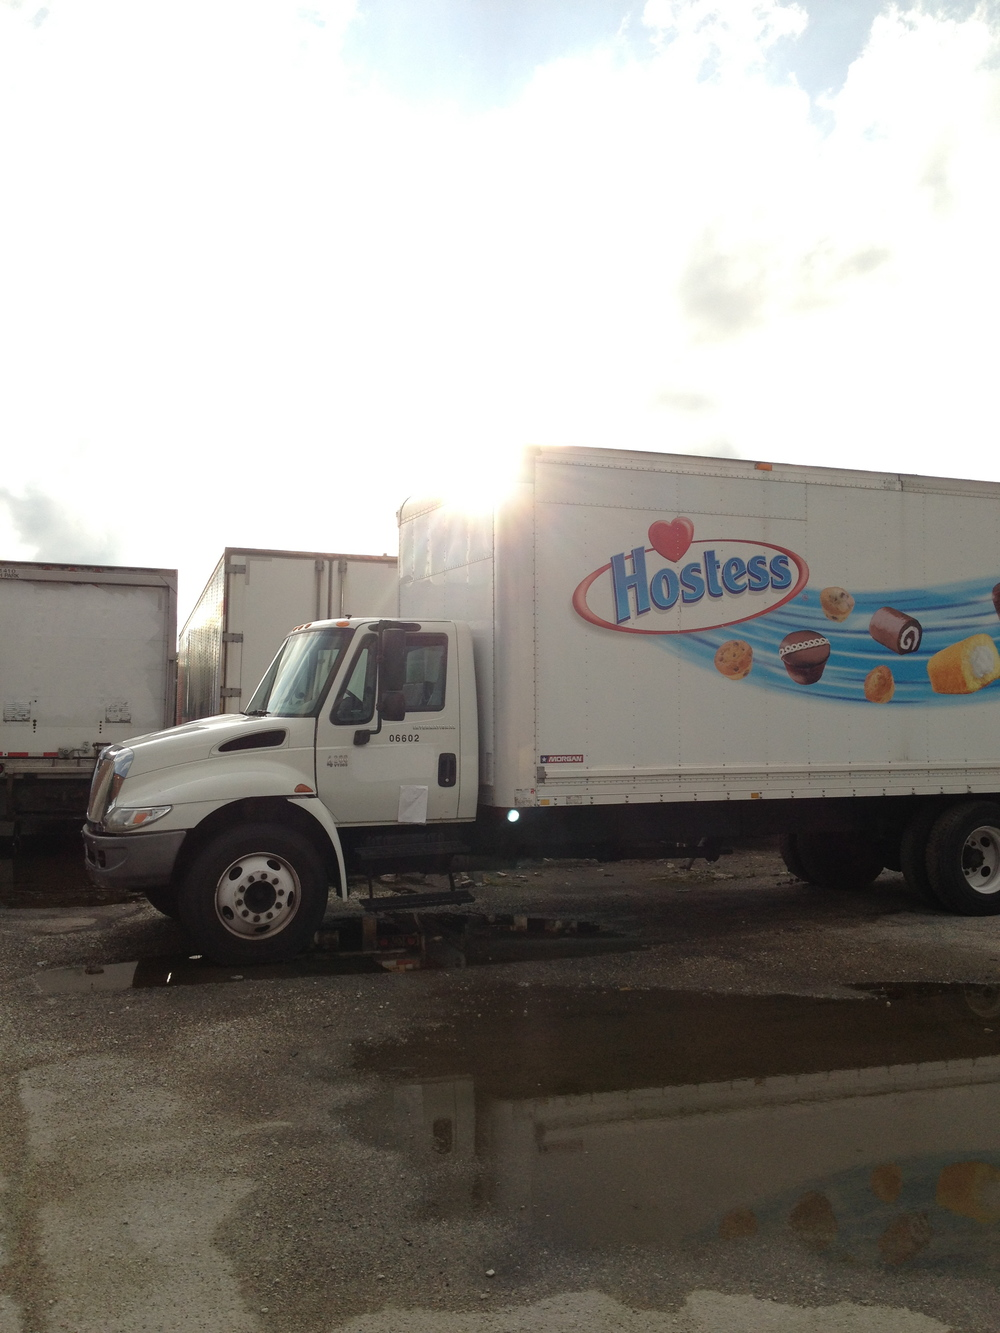 Hostess Trucks